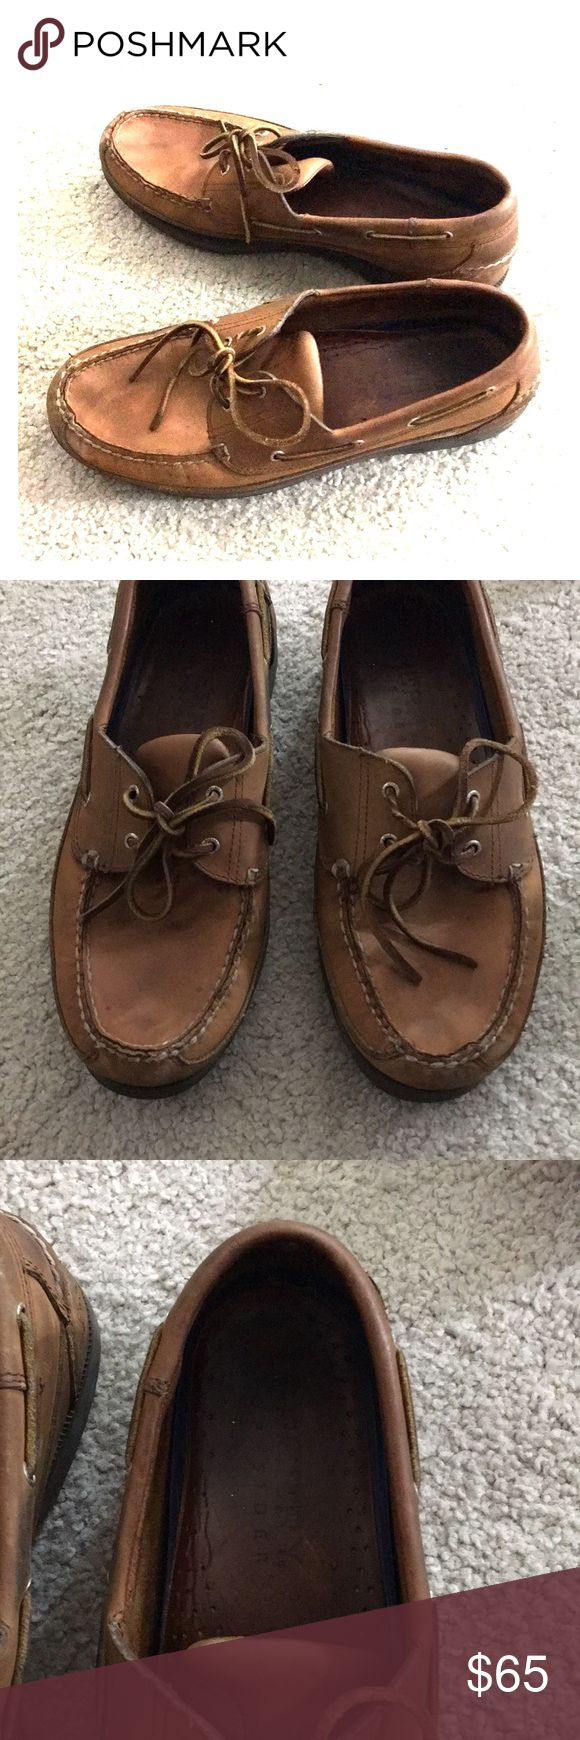 🇺🇸Sperry top slider men brown leather sz 11 wide Men's Speary top slider loafers size 11 wide brown leather very comfortable awesome shoes great for any season non-smoking home fast delivery I didn't excellent price get it today Sperry Top-Sider Shoes Loafers & Slip-Ons